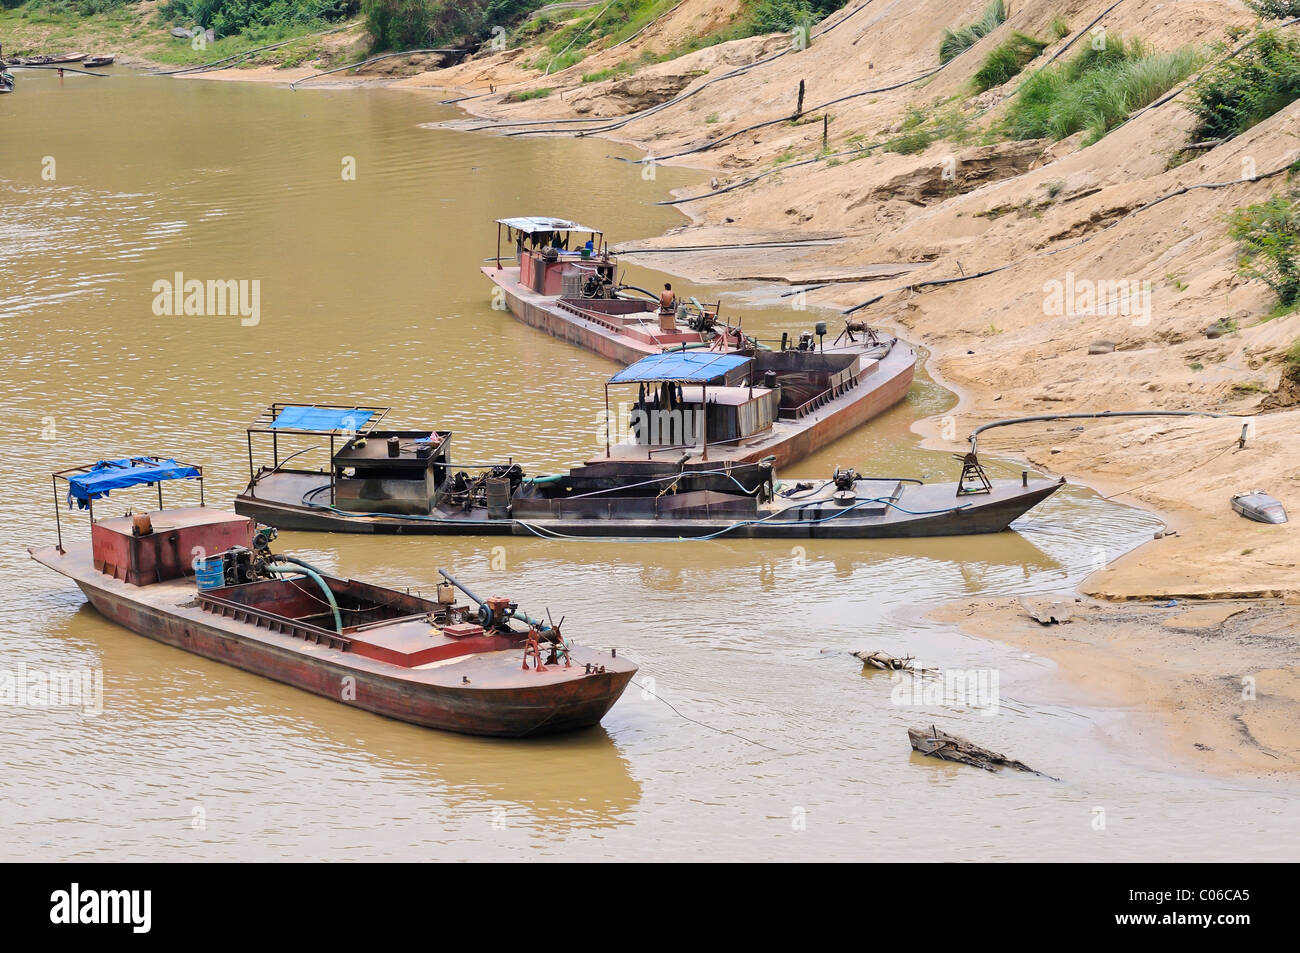 Sand extraction, sand suction boats, Vietnam, Asia - Stock Image